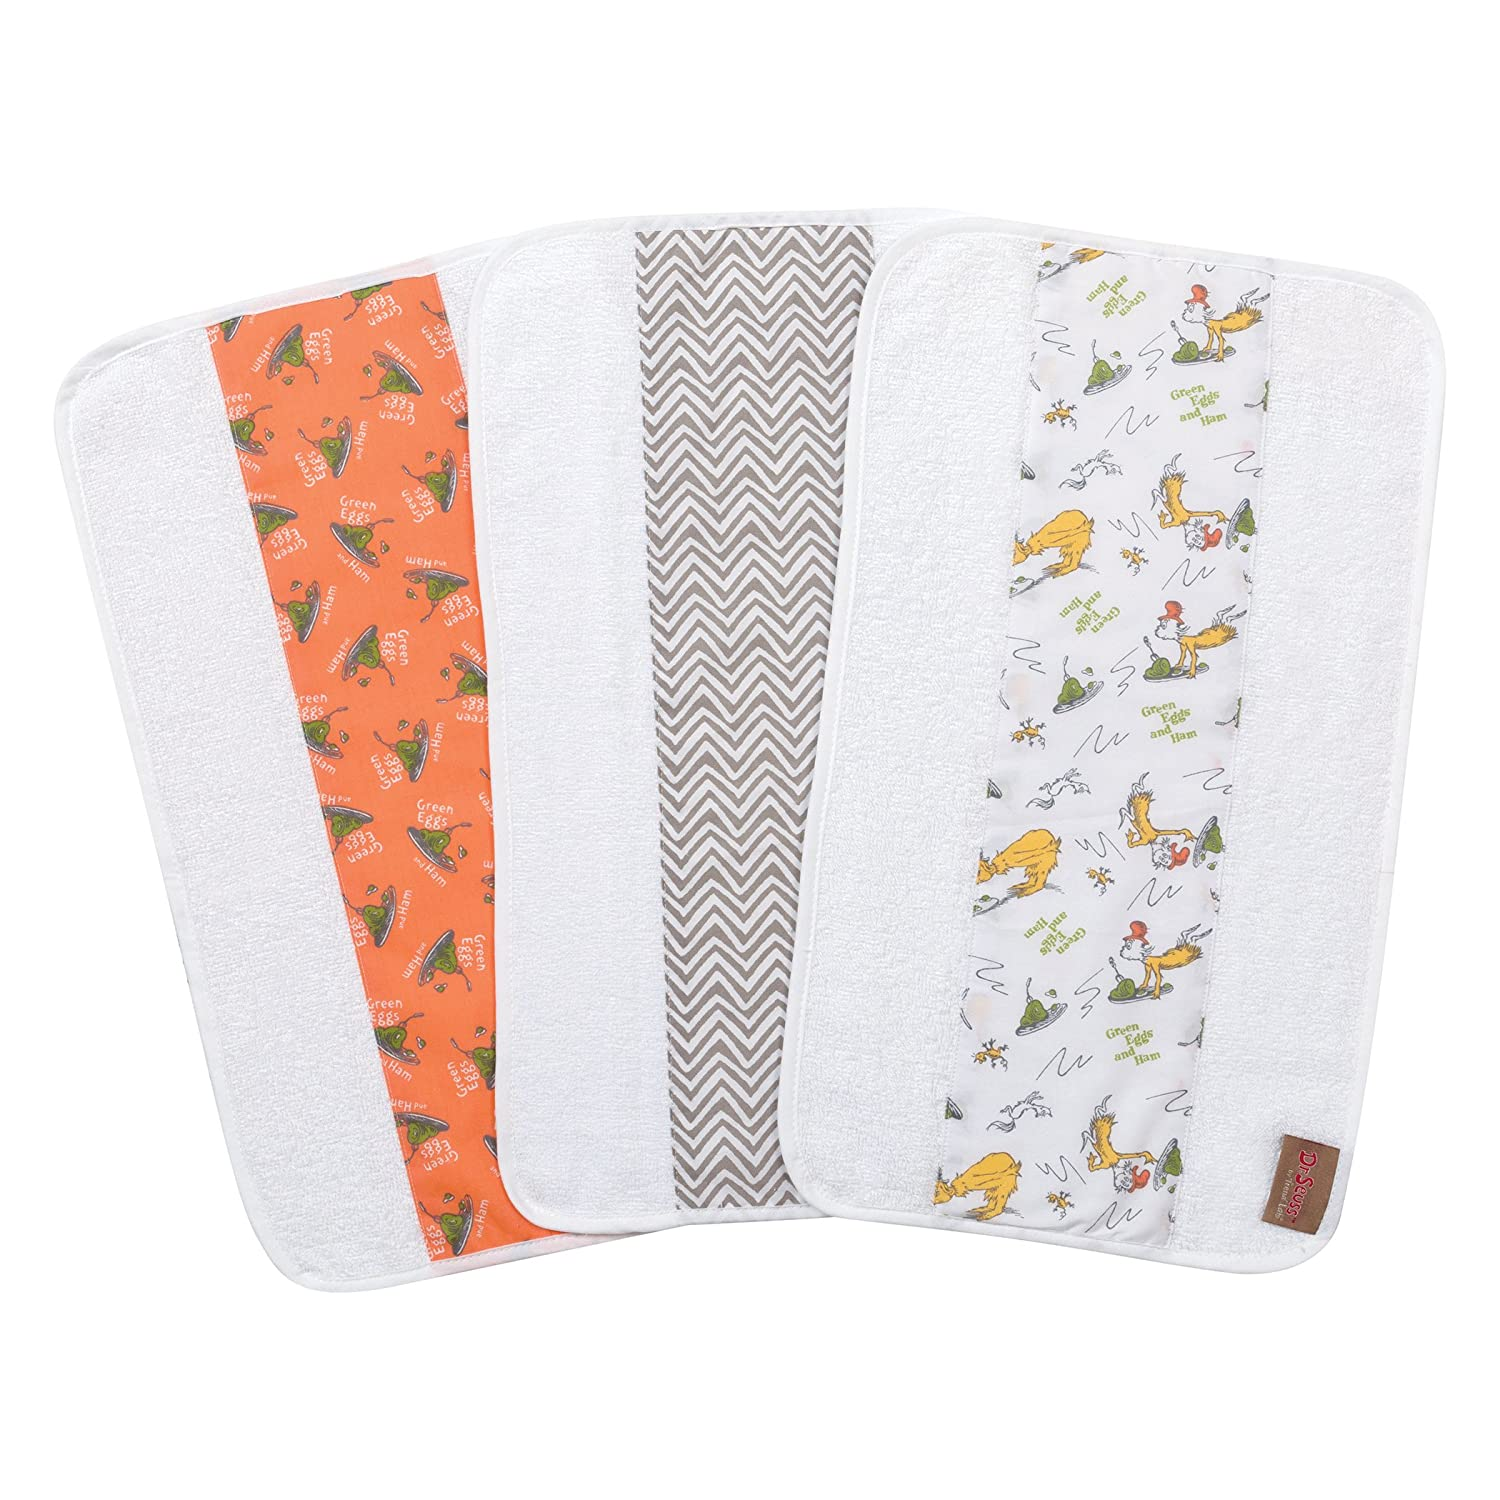 Trend Lab Dr. Seuss by Green Eggs and Ham 3 Pack Jumbo Burp Cloth Set, Orange/Green Yellow/Gray/White 30534